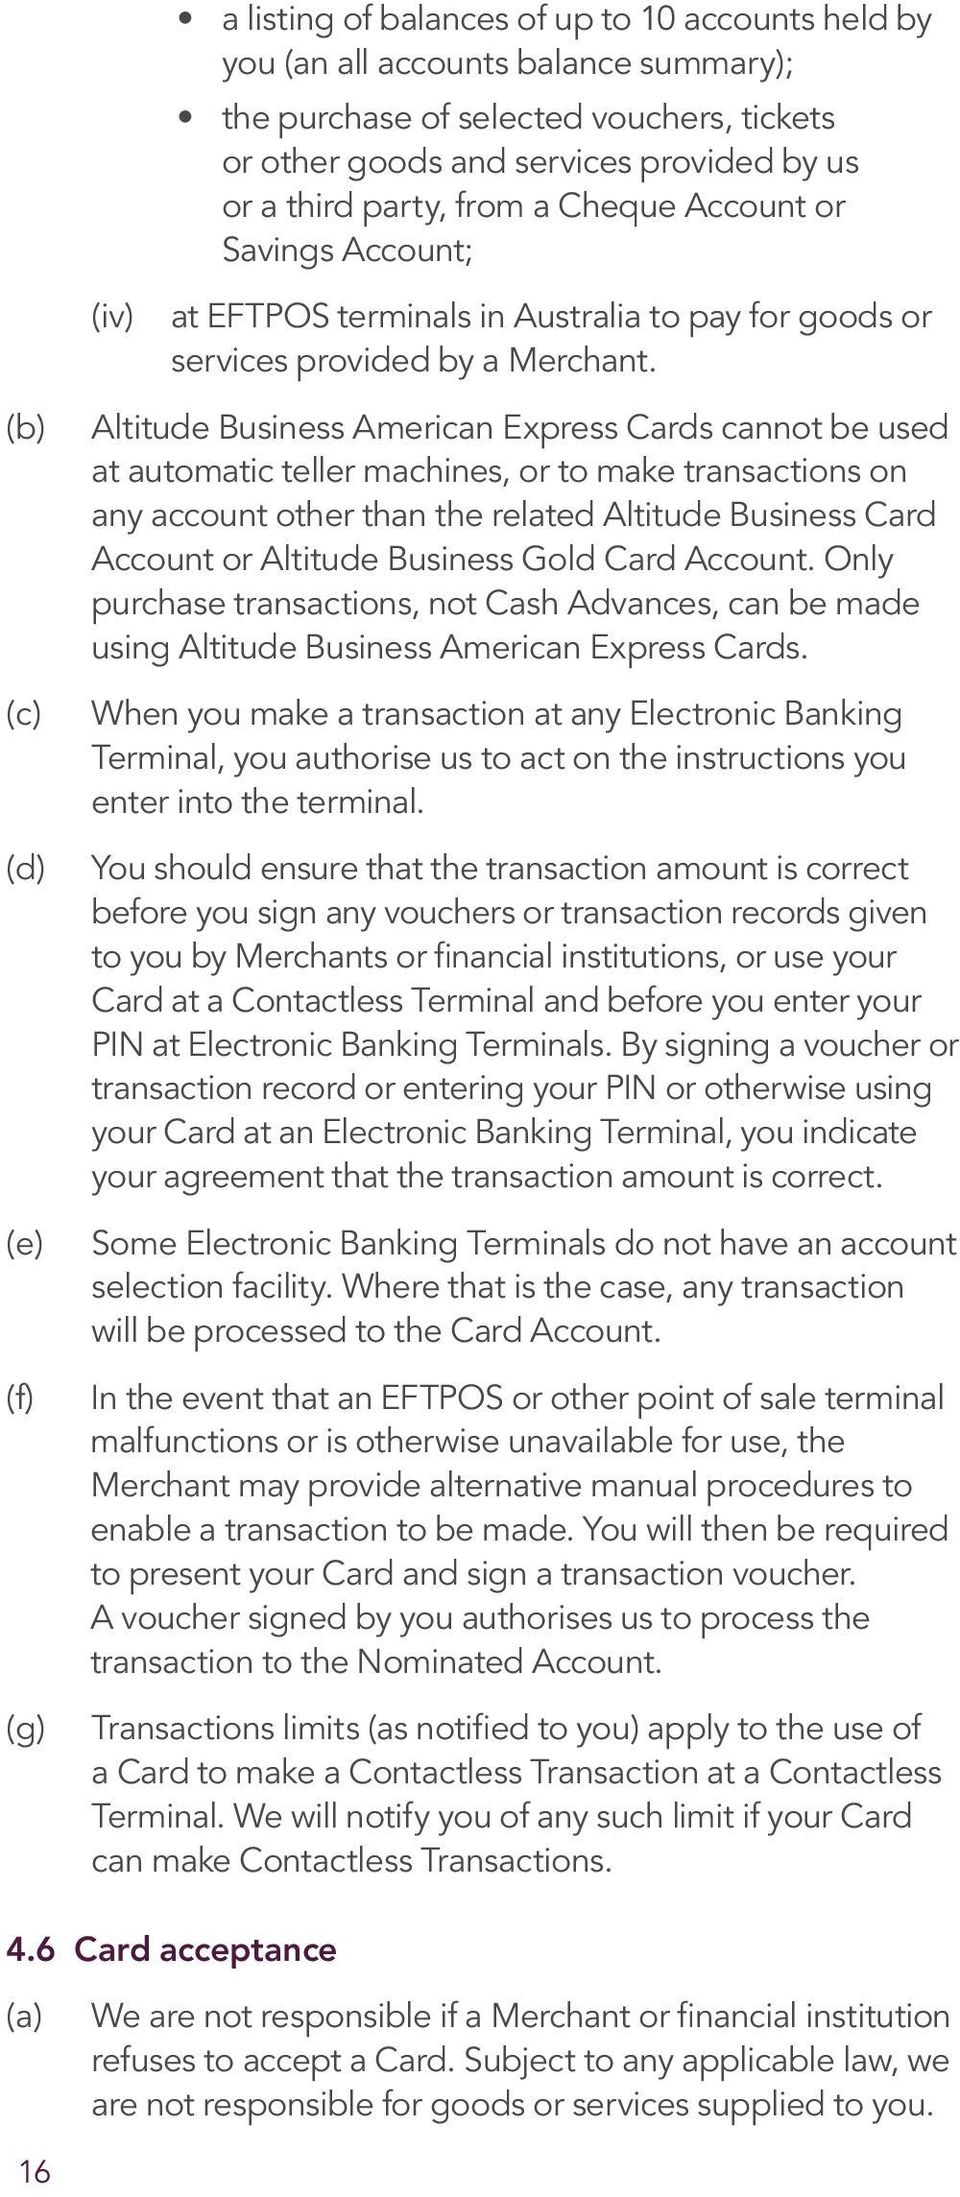 Altitude Business American Express Cards cannot be used at automatic teller machines, or to make transactions on any account other than the related Altitude Business Card Account or Altitude Business